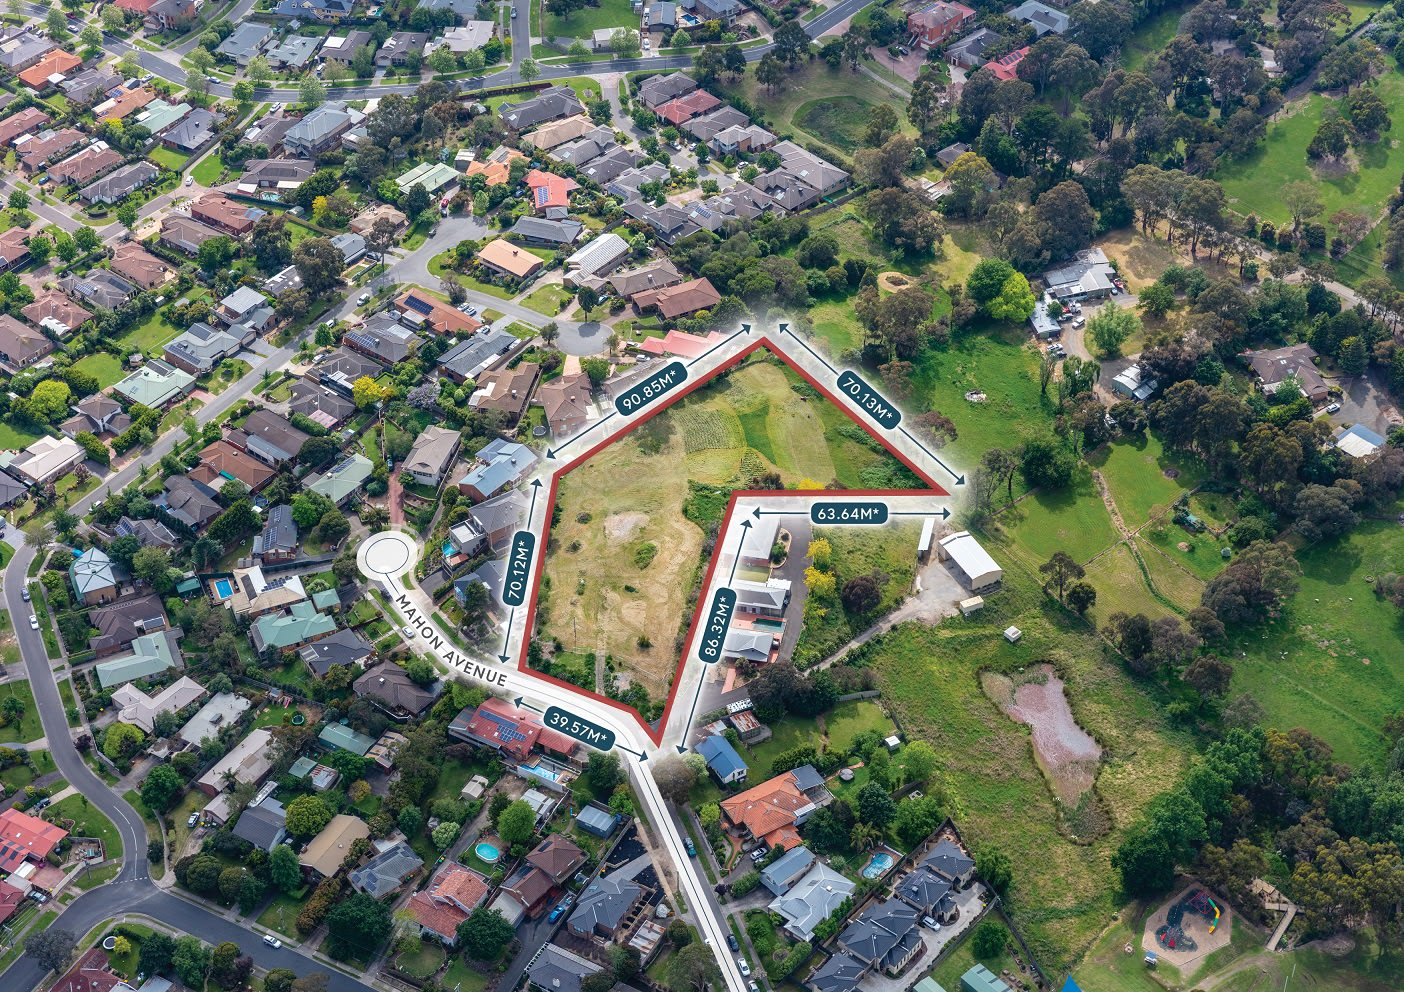 Beaconsfield townhouse project site sold at bullish price